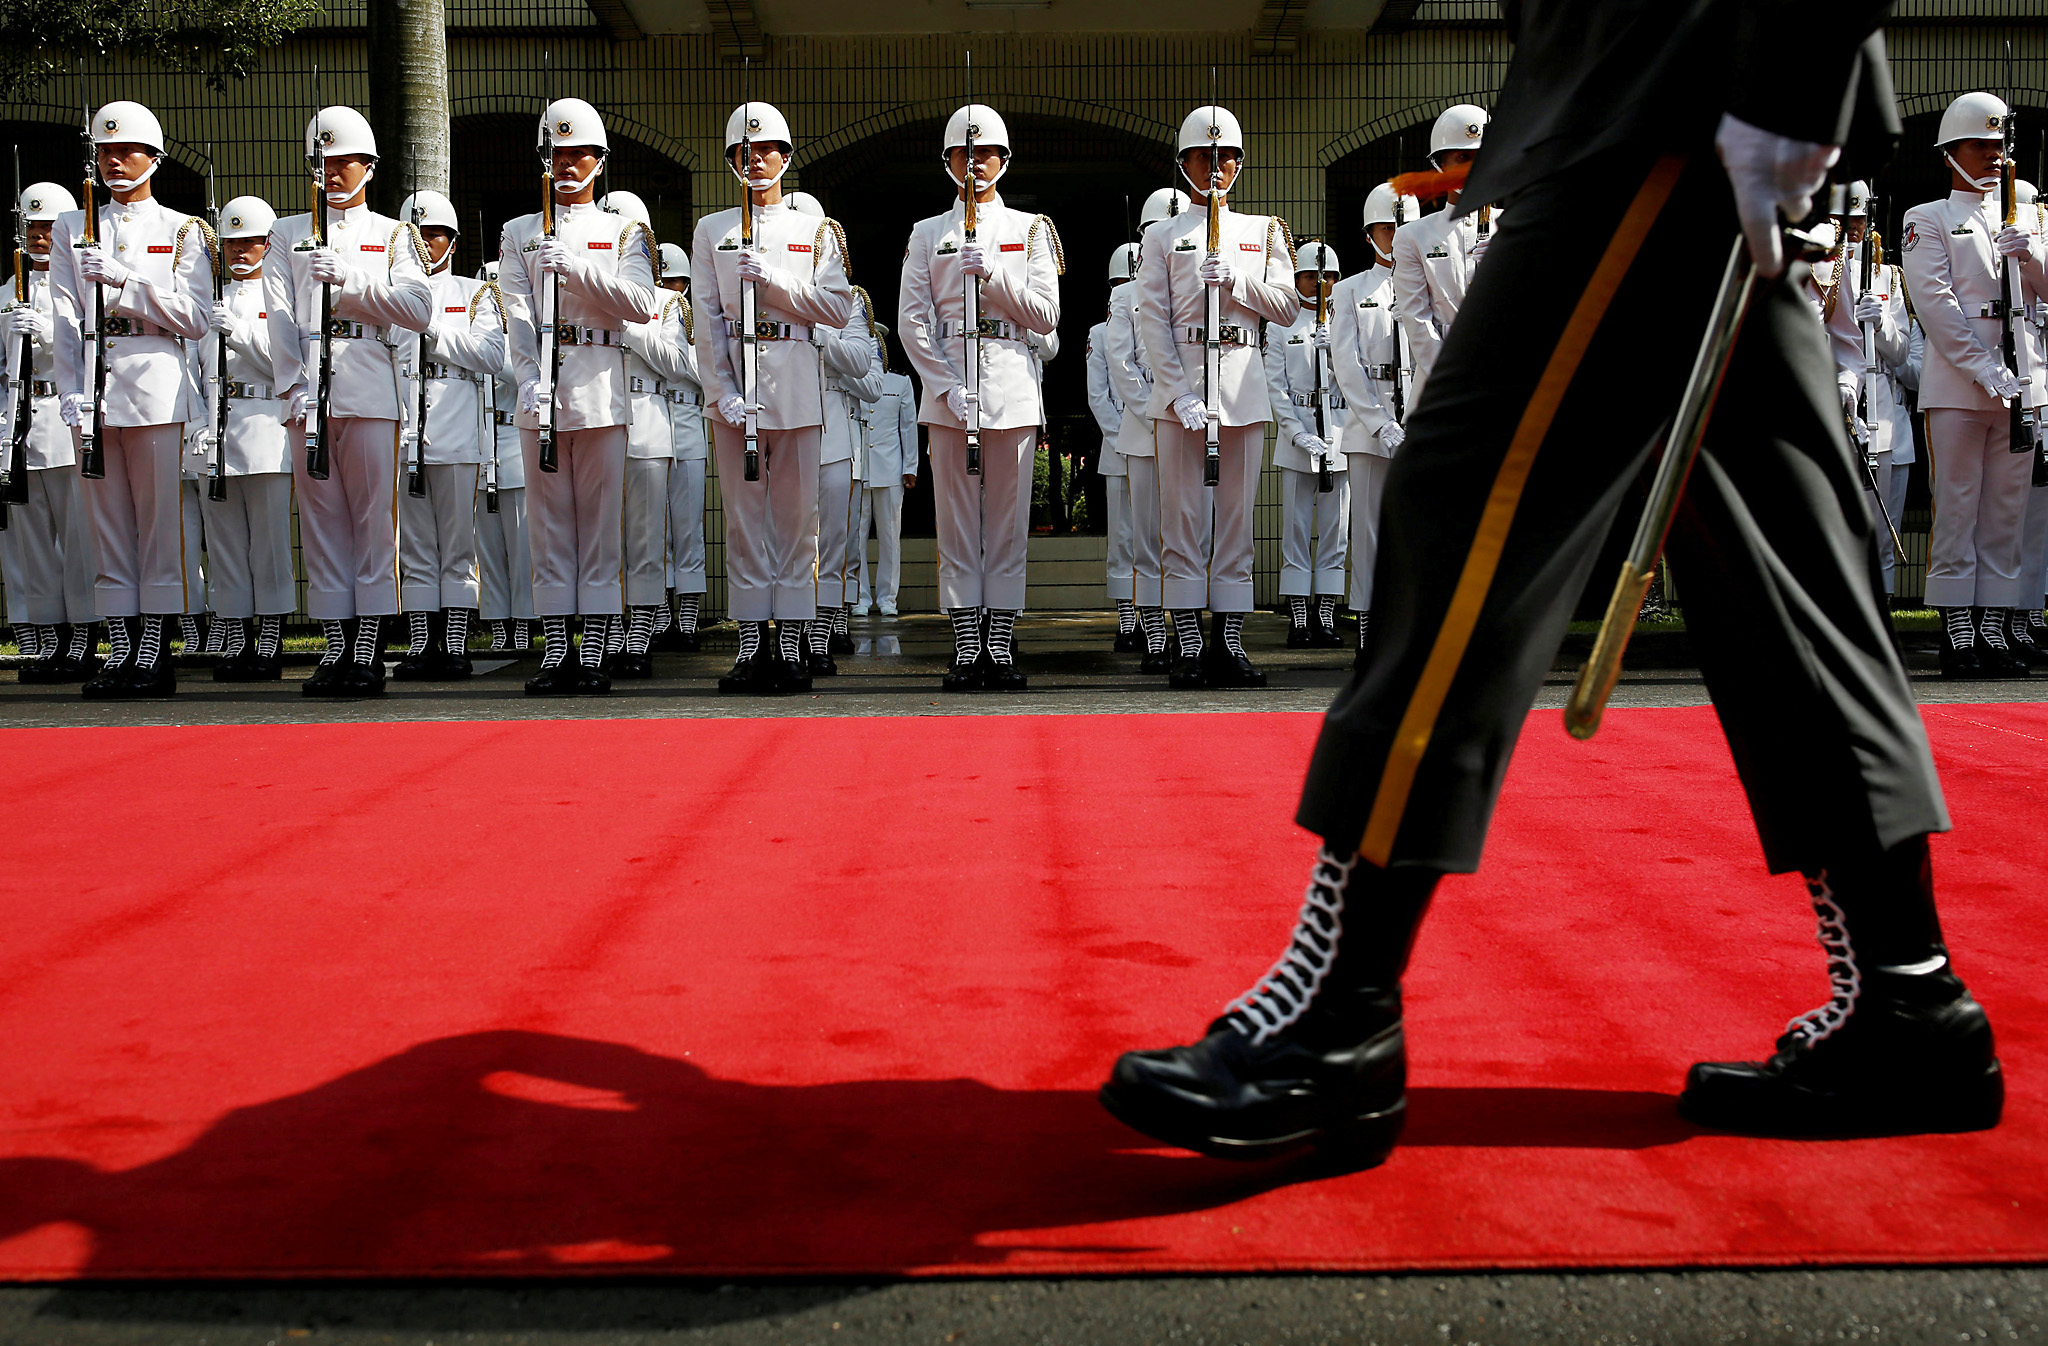 Taiwanese honour guards stand during a ceremony to mark the 92nd anniversary of the Whampoa Military Academy, in Kaohsiung, southern Taiwan June 16, 2016. REUTERS/Tyrone Siu     TPX IMAGES OF THE DAY